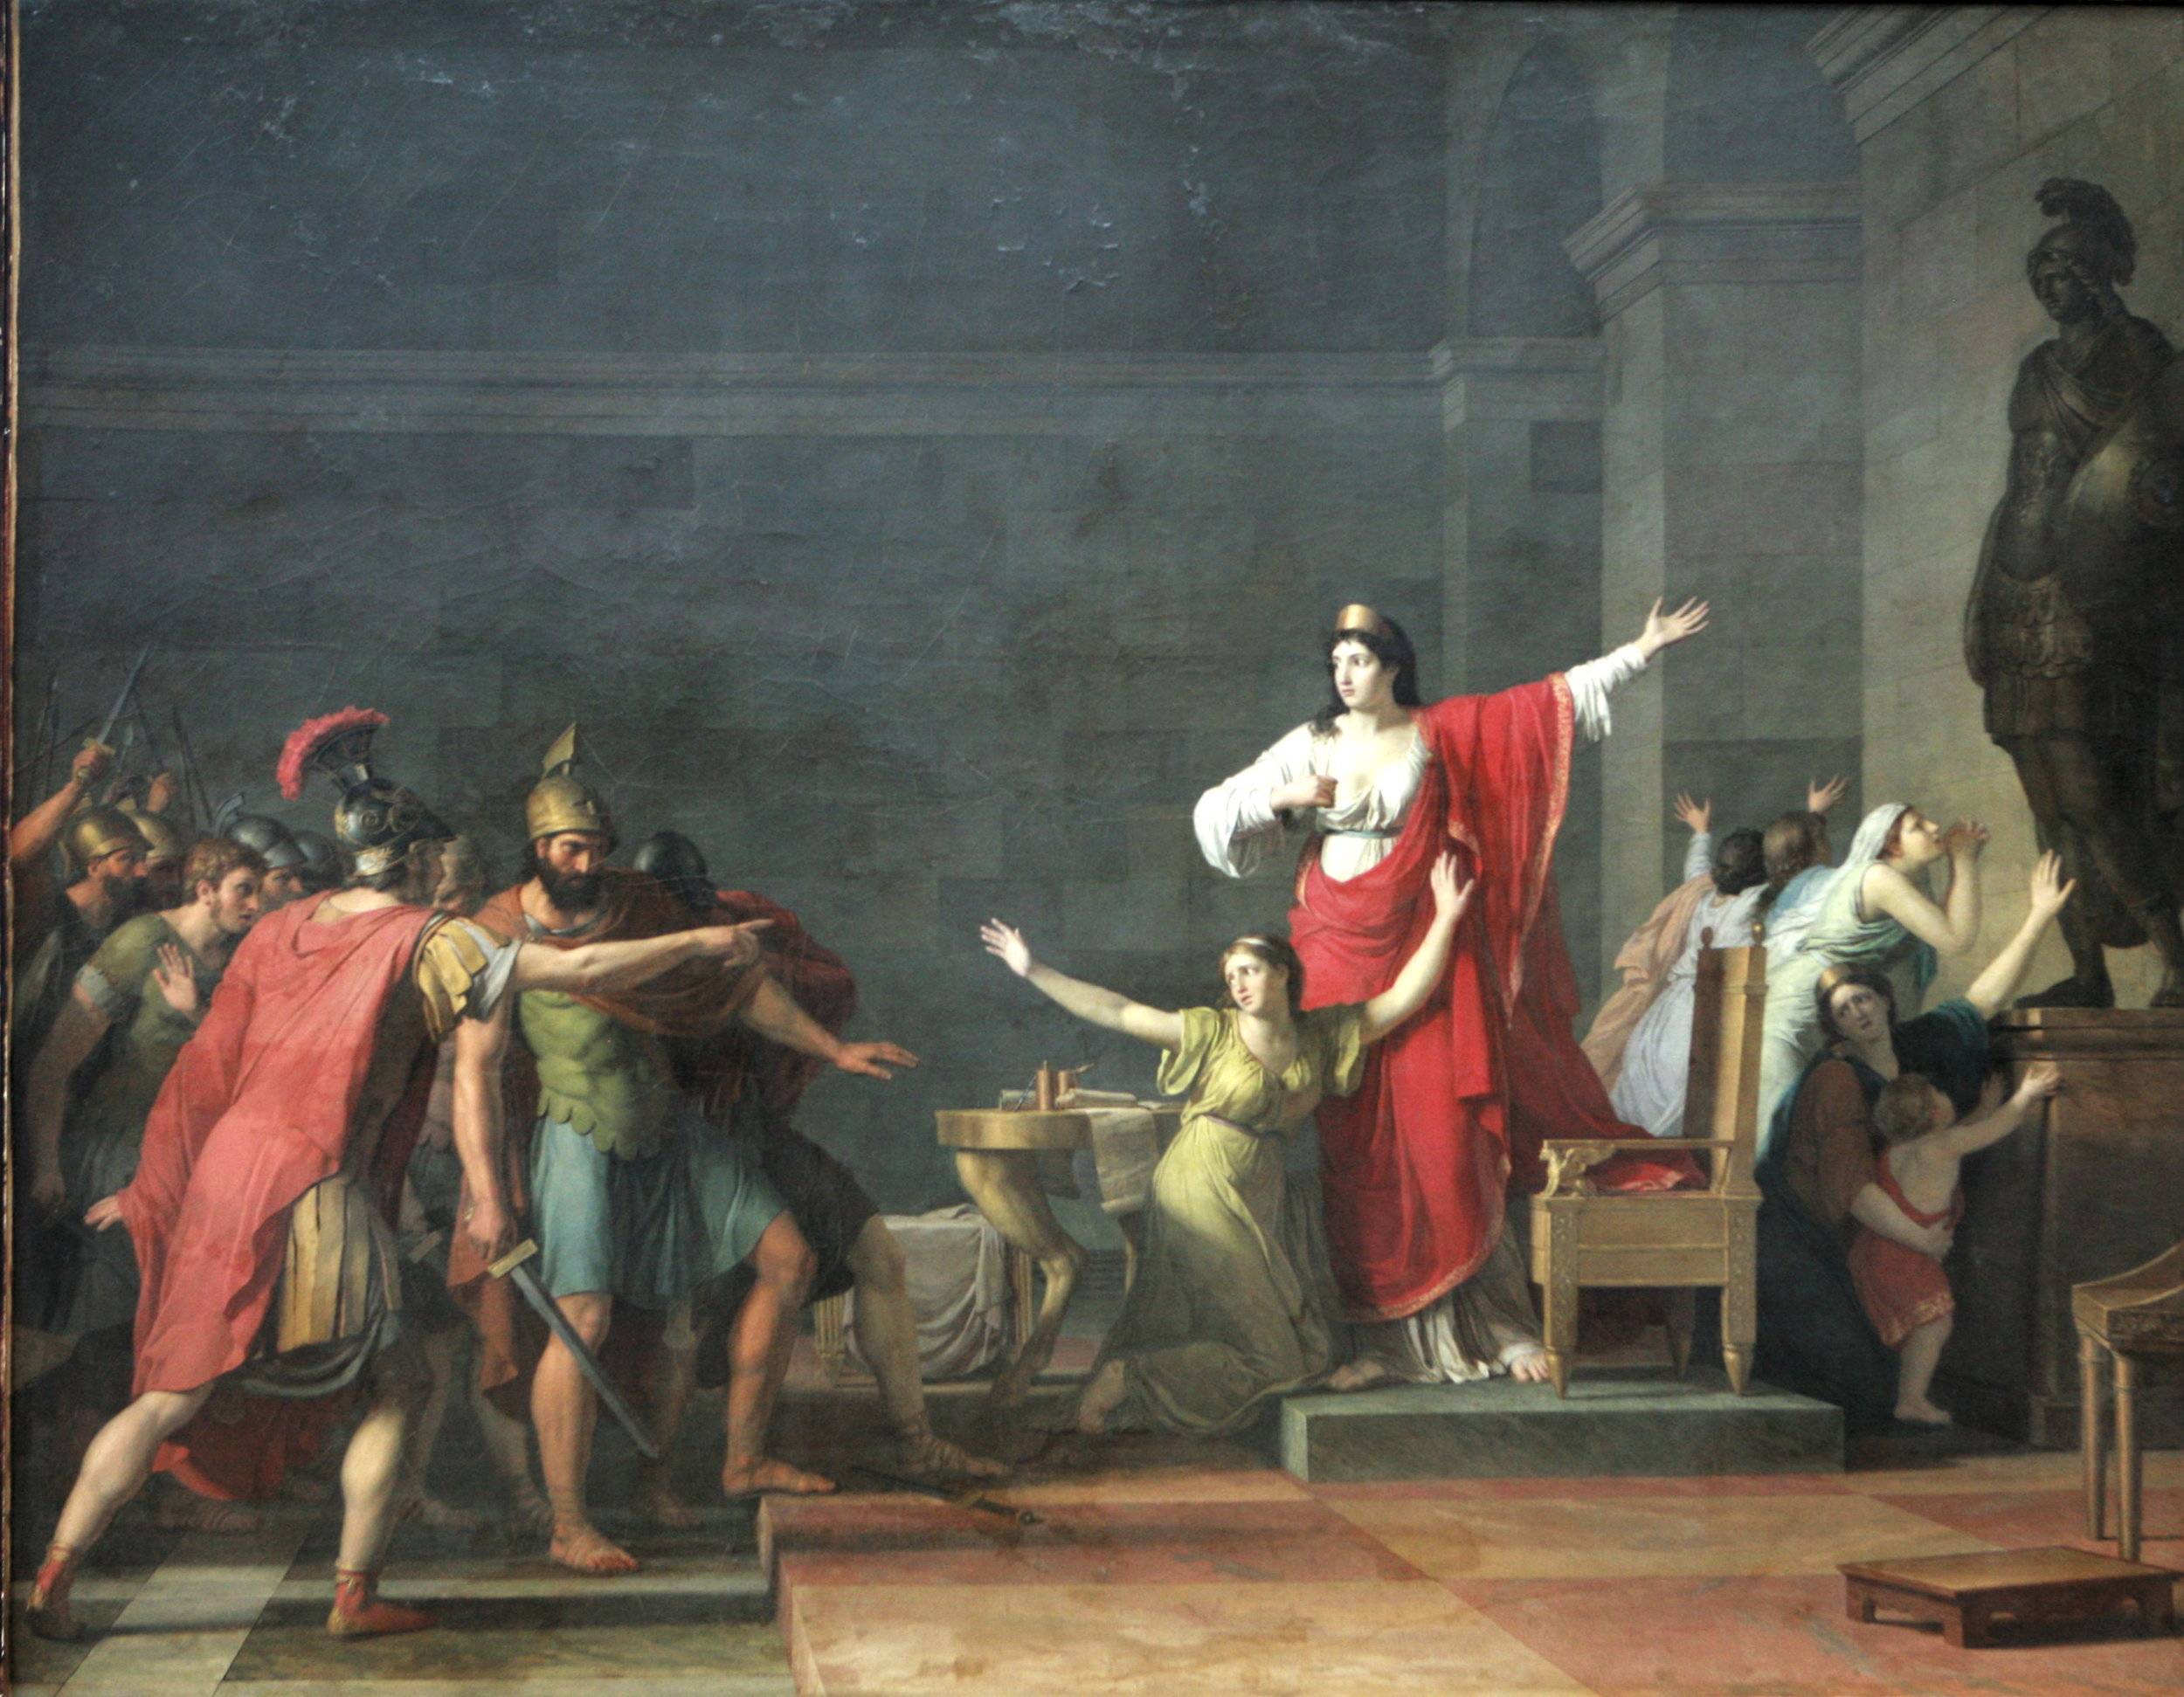 Olympias running the room, as always. - Cassandre et Olympia by Jean Joseph Taillasson